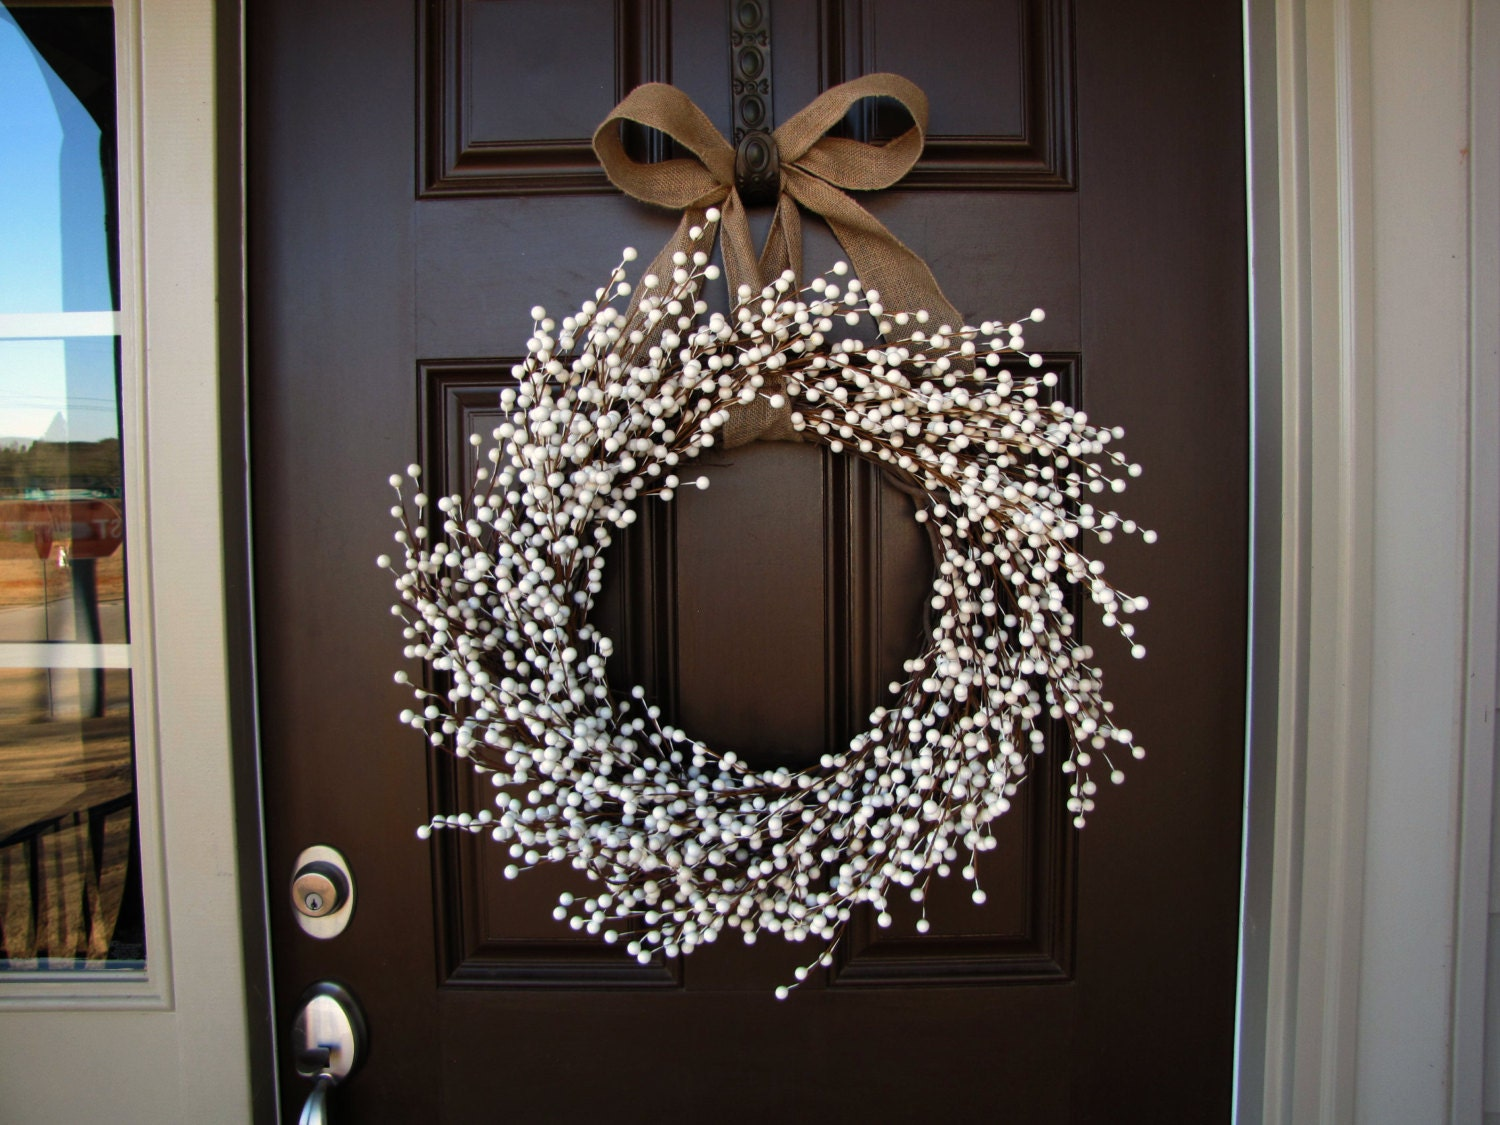 january snowfall winter white berry wreath double front doors. Black Bedroom Furniture Sets. Home Design Ideas